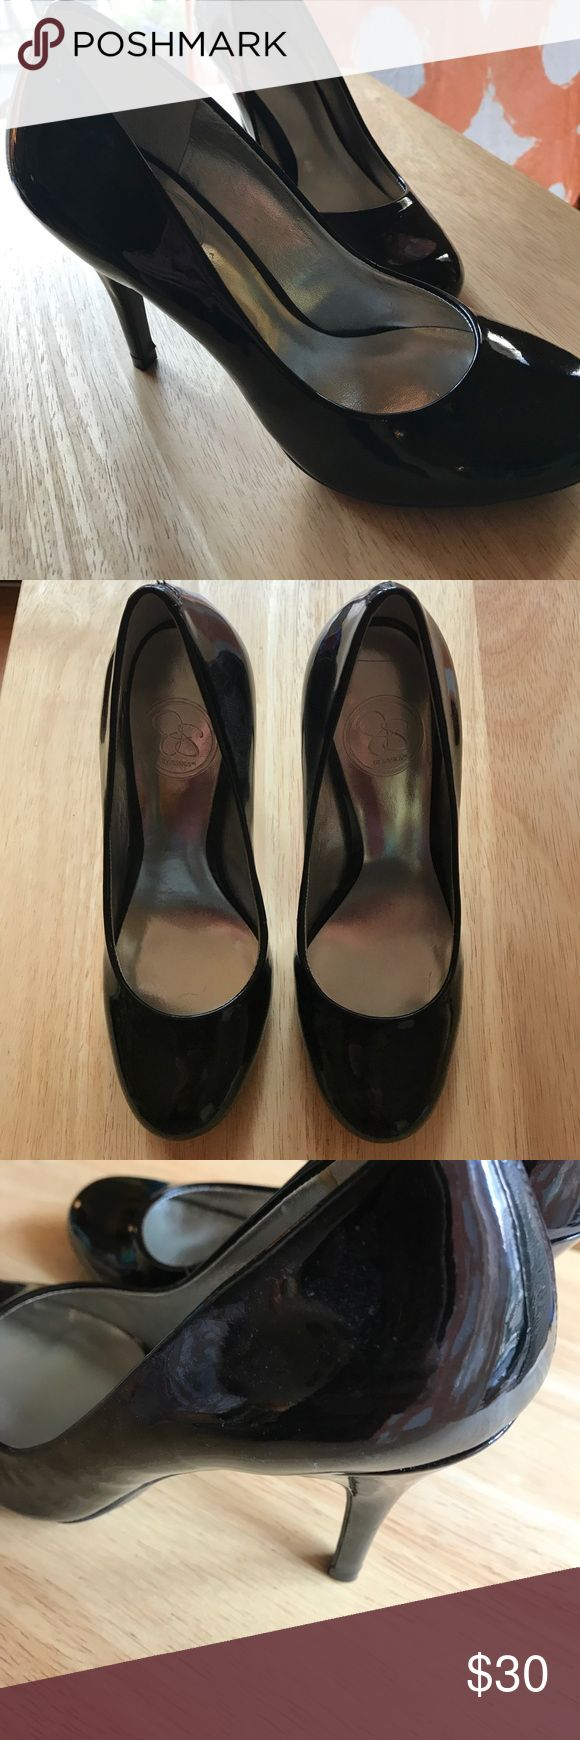 "Jessica Simpson Black Patent Heels Shoes 6 NEW This is a pair of black patent heels by Jessica Simpson. Size: 6B. Heel measures approx 3.75"" high. These are brand new without box; they were tried on a few times in my apartment, but never worn outside. Jessica Simpson Shoes Heels"